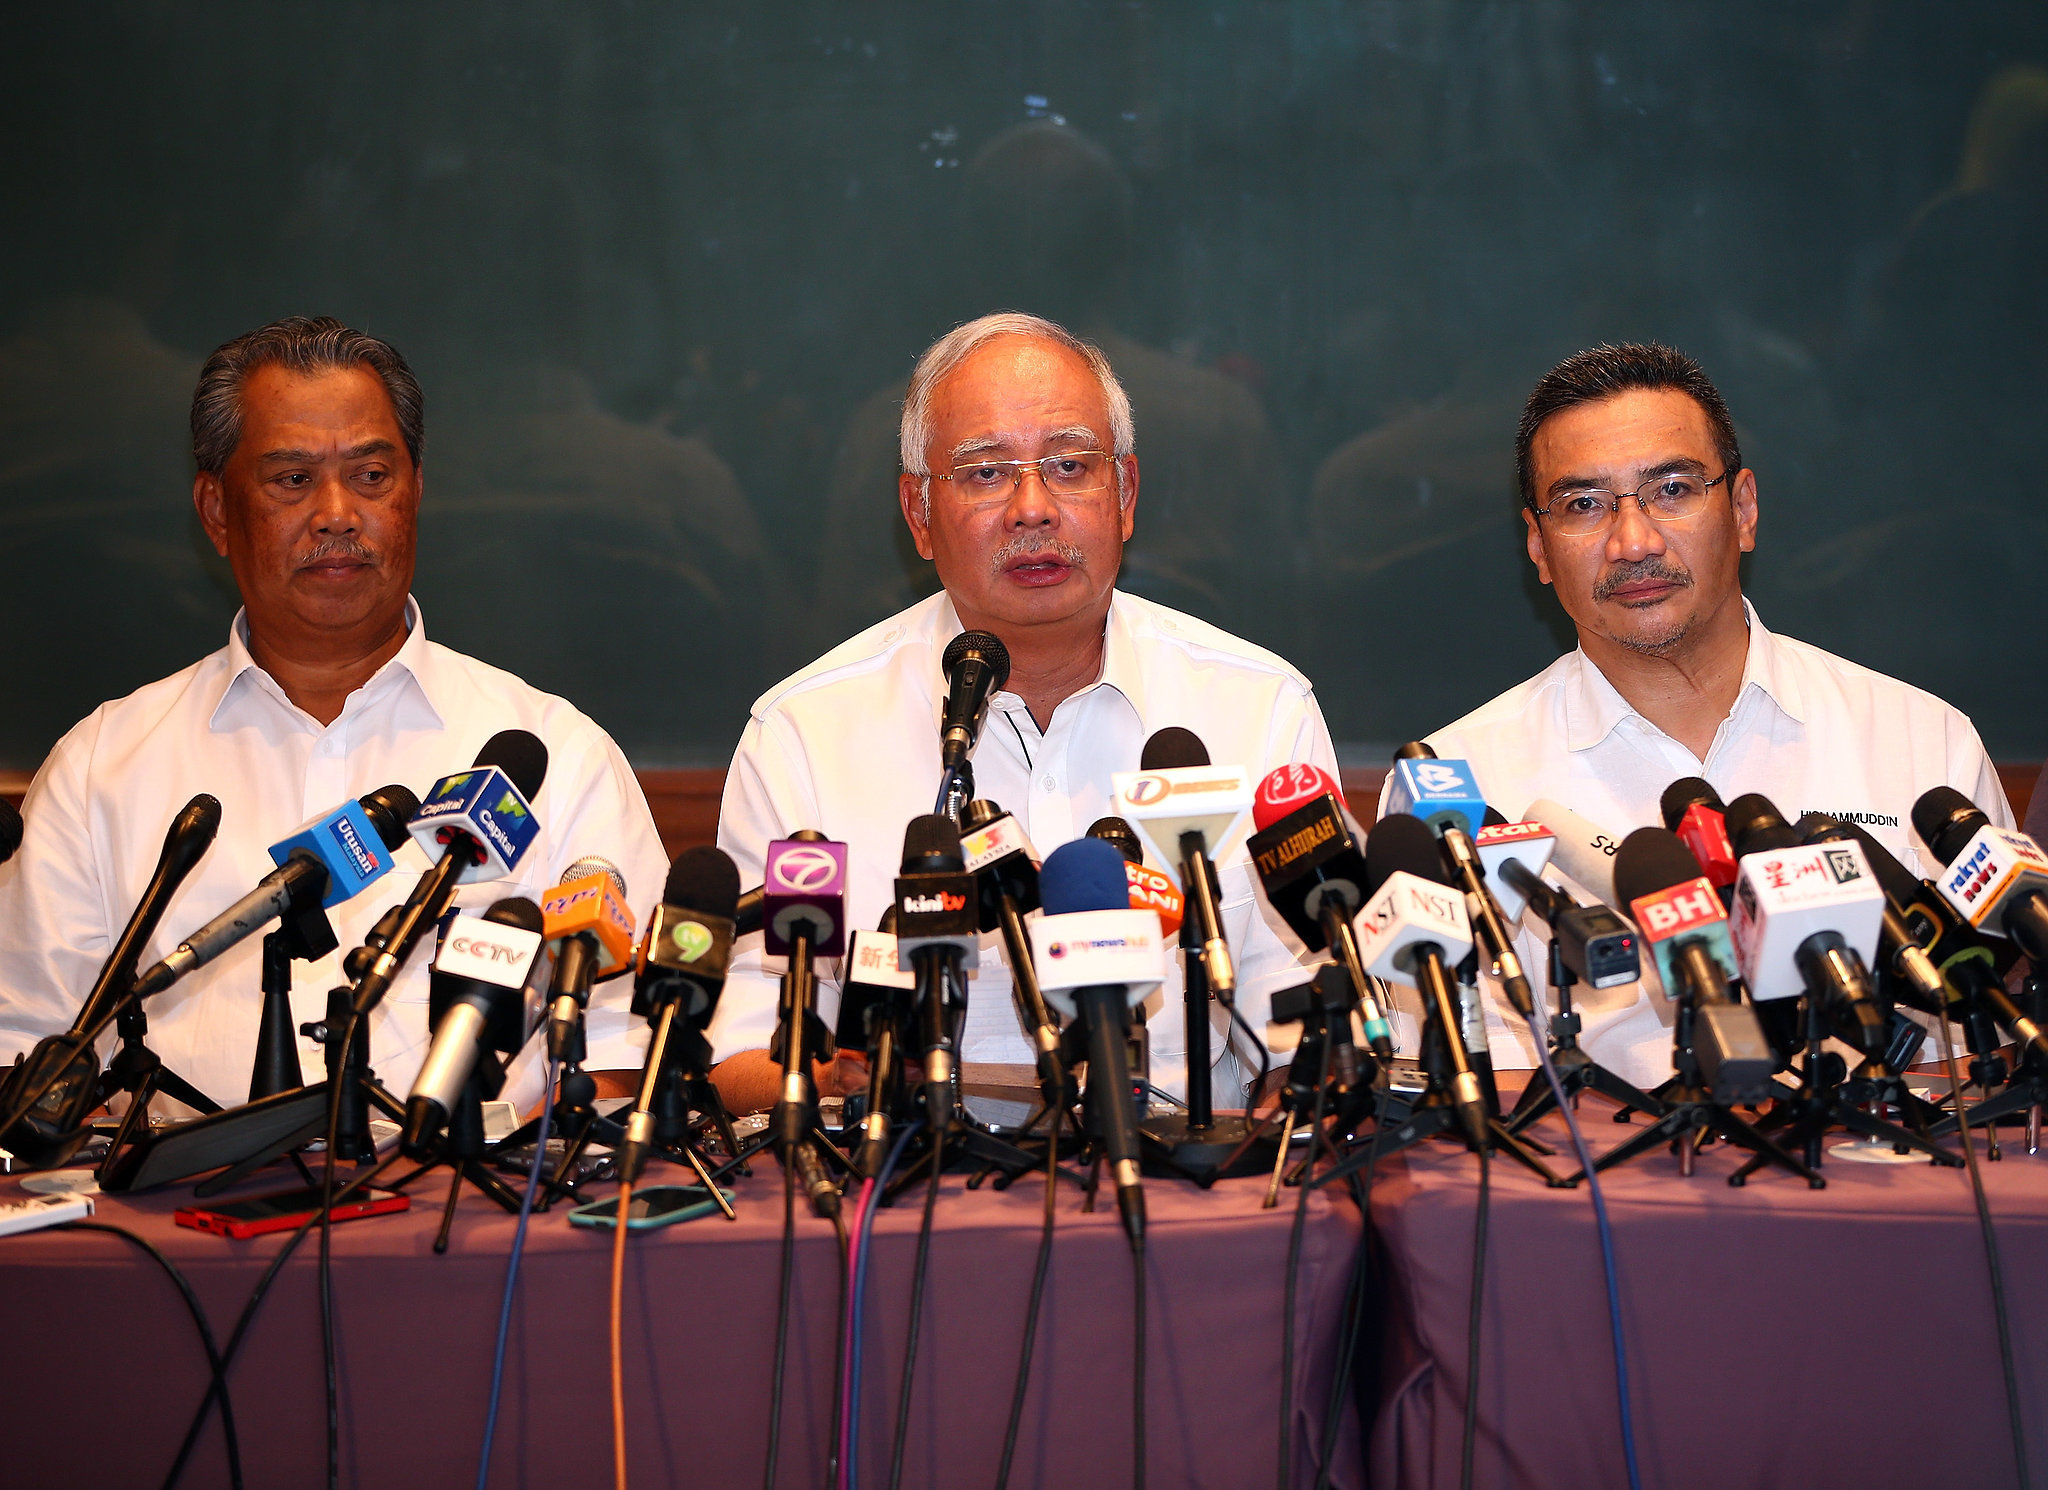 Deputy Prime Minister of Malaysia Tan Sri Muhyiddin Yassin, Prime Minister Najib Razak, and Minister of Transport Datuk Hishammuddin Hussein updated the media on search efforts on Saturday.